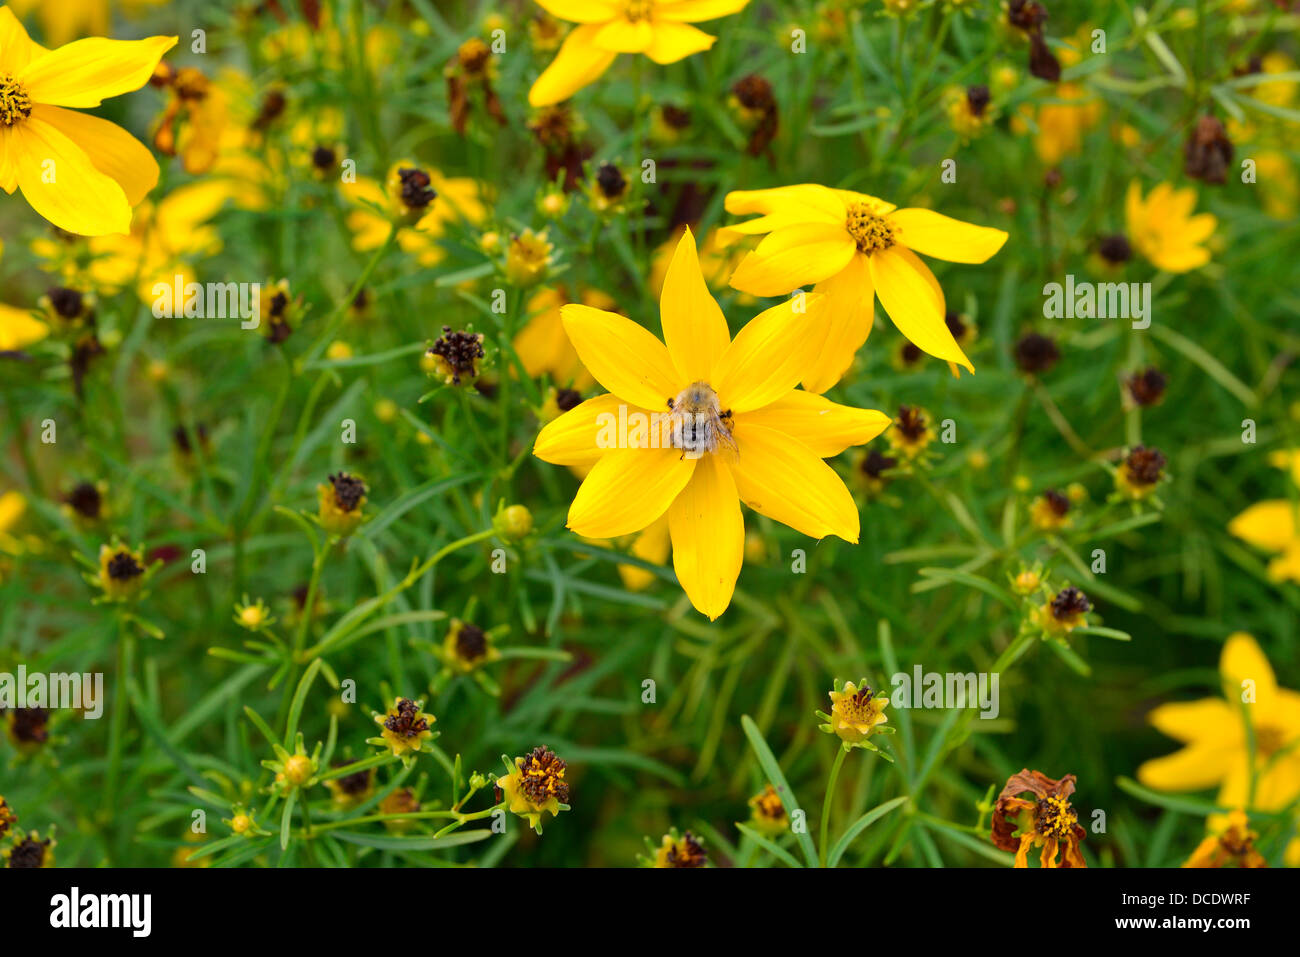 Honey  bees collecting pollen for nectar from  flowers   in a garden Stock Photo